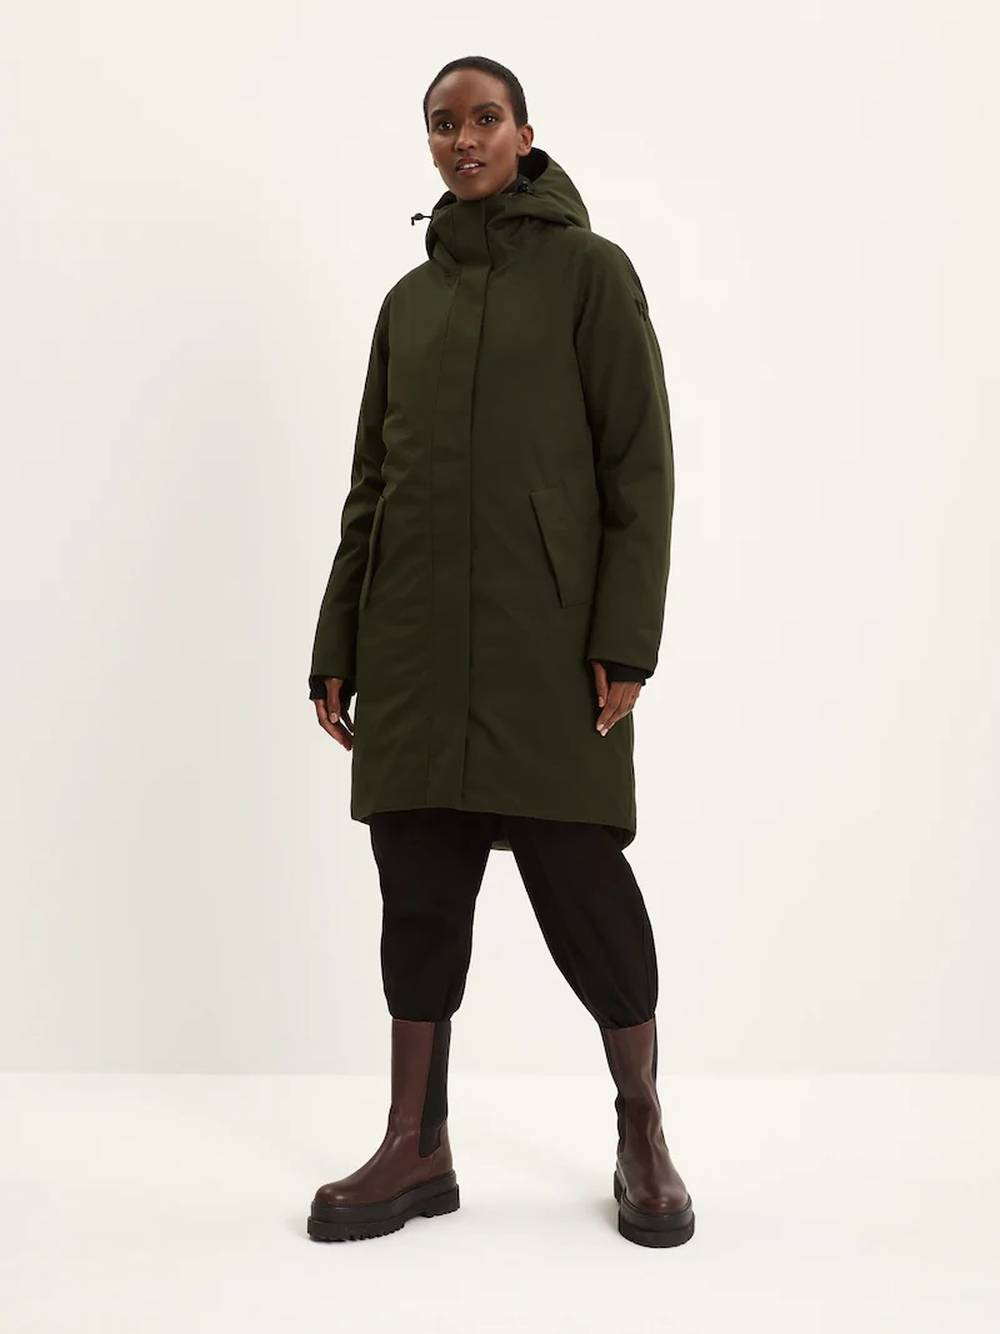 frank and oak ethical clothing canada